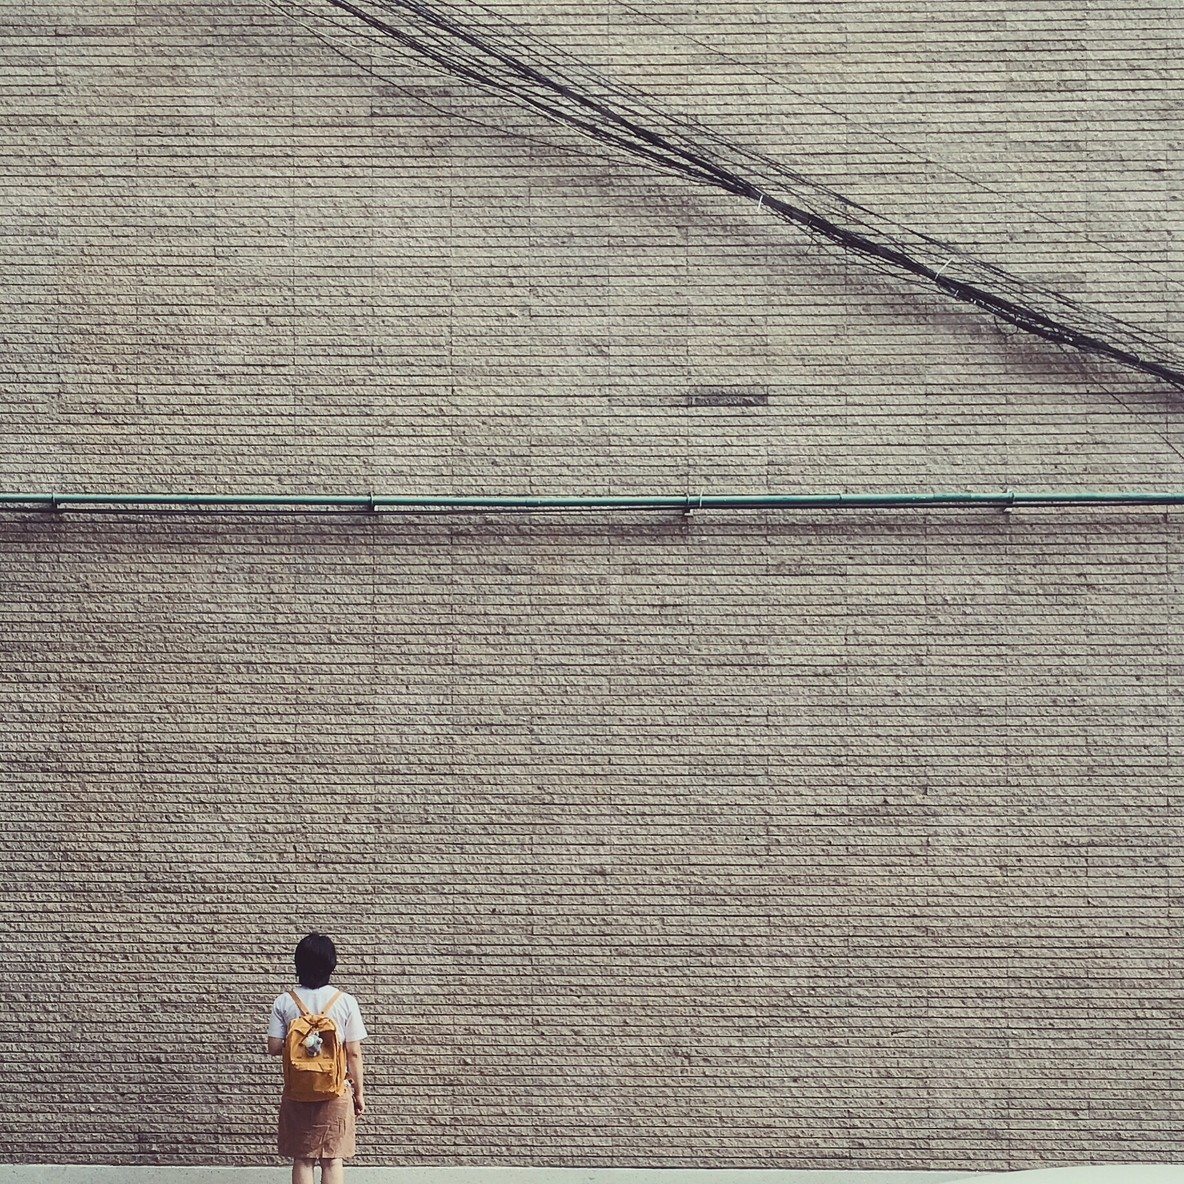 Young girl with brick wall